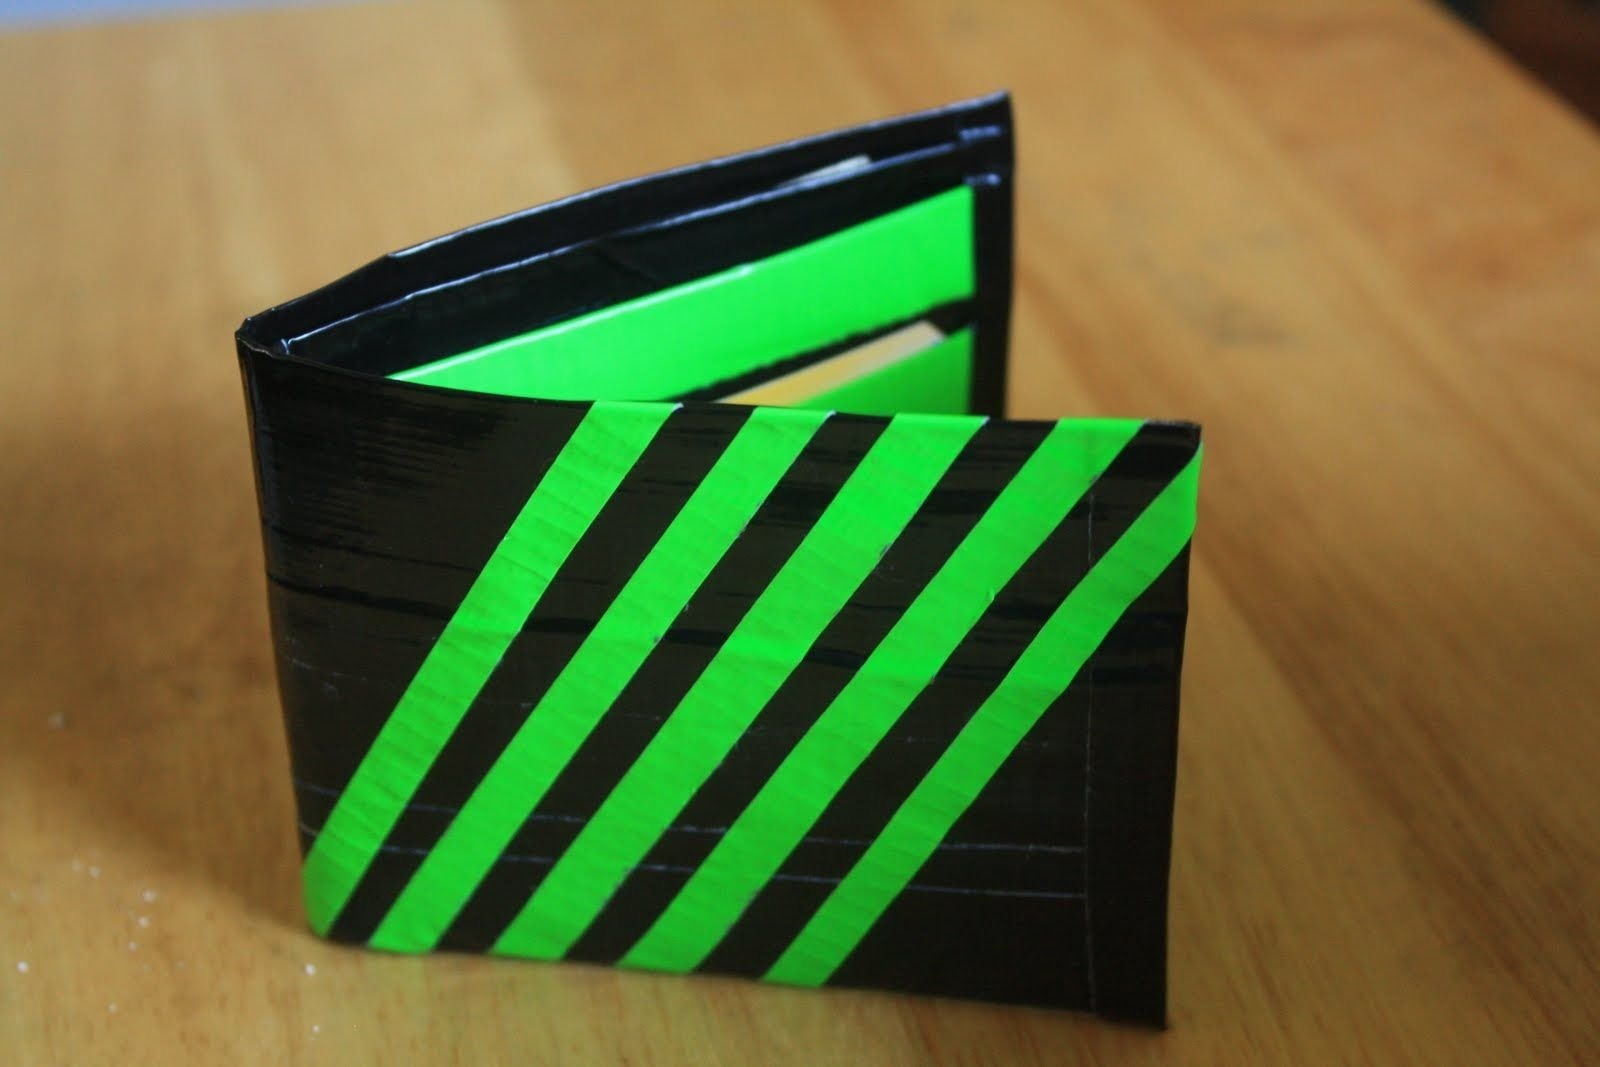 10 Attractive Duct Tape Ideas For Boys crafts for boys joyfulgirl makes crafts duct tape wallet cub 2021